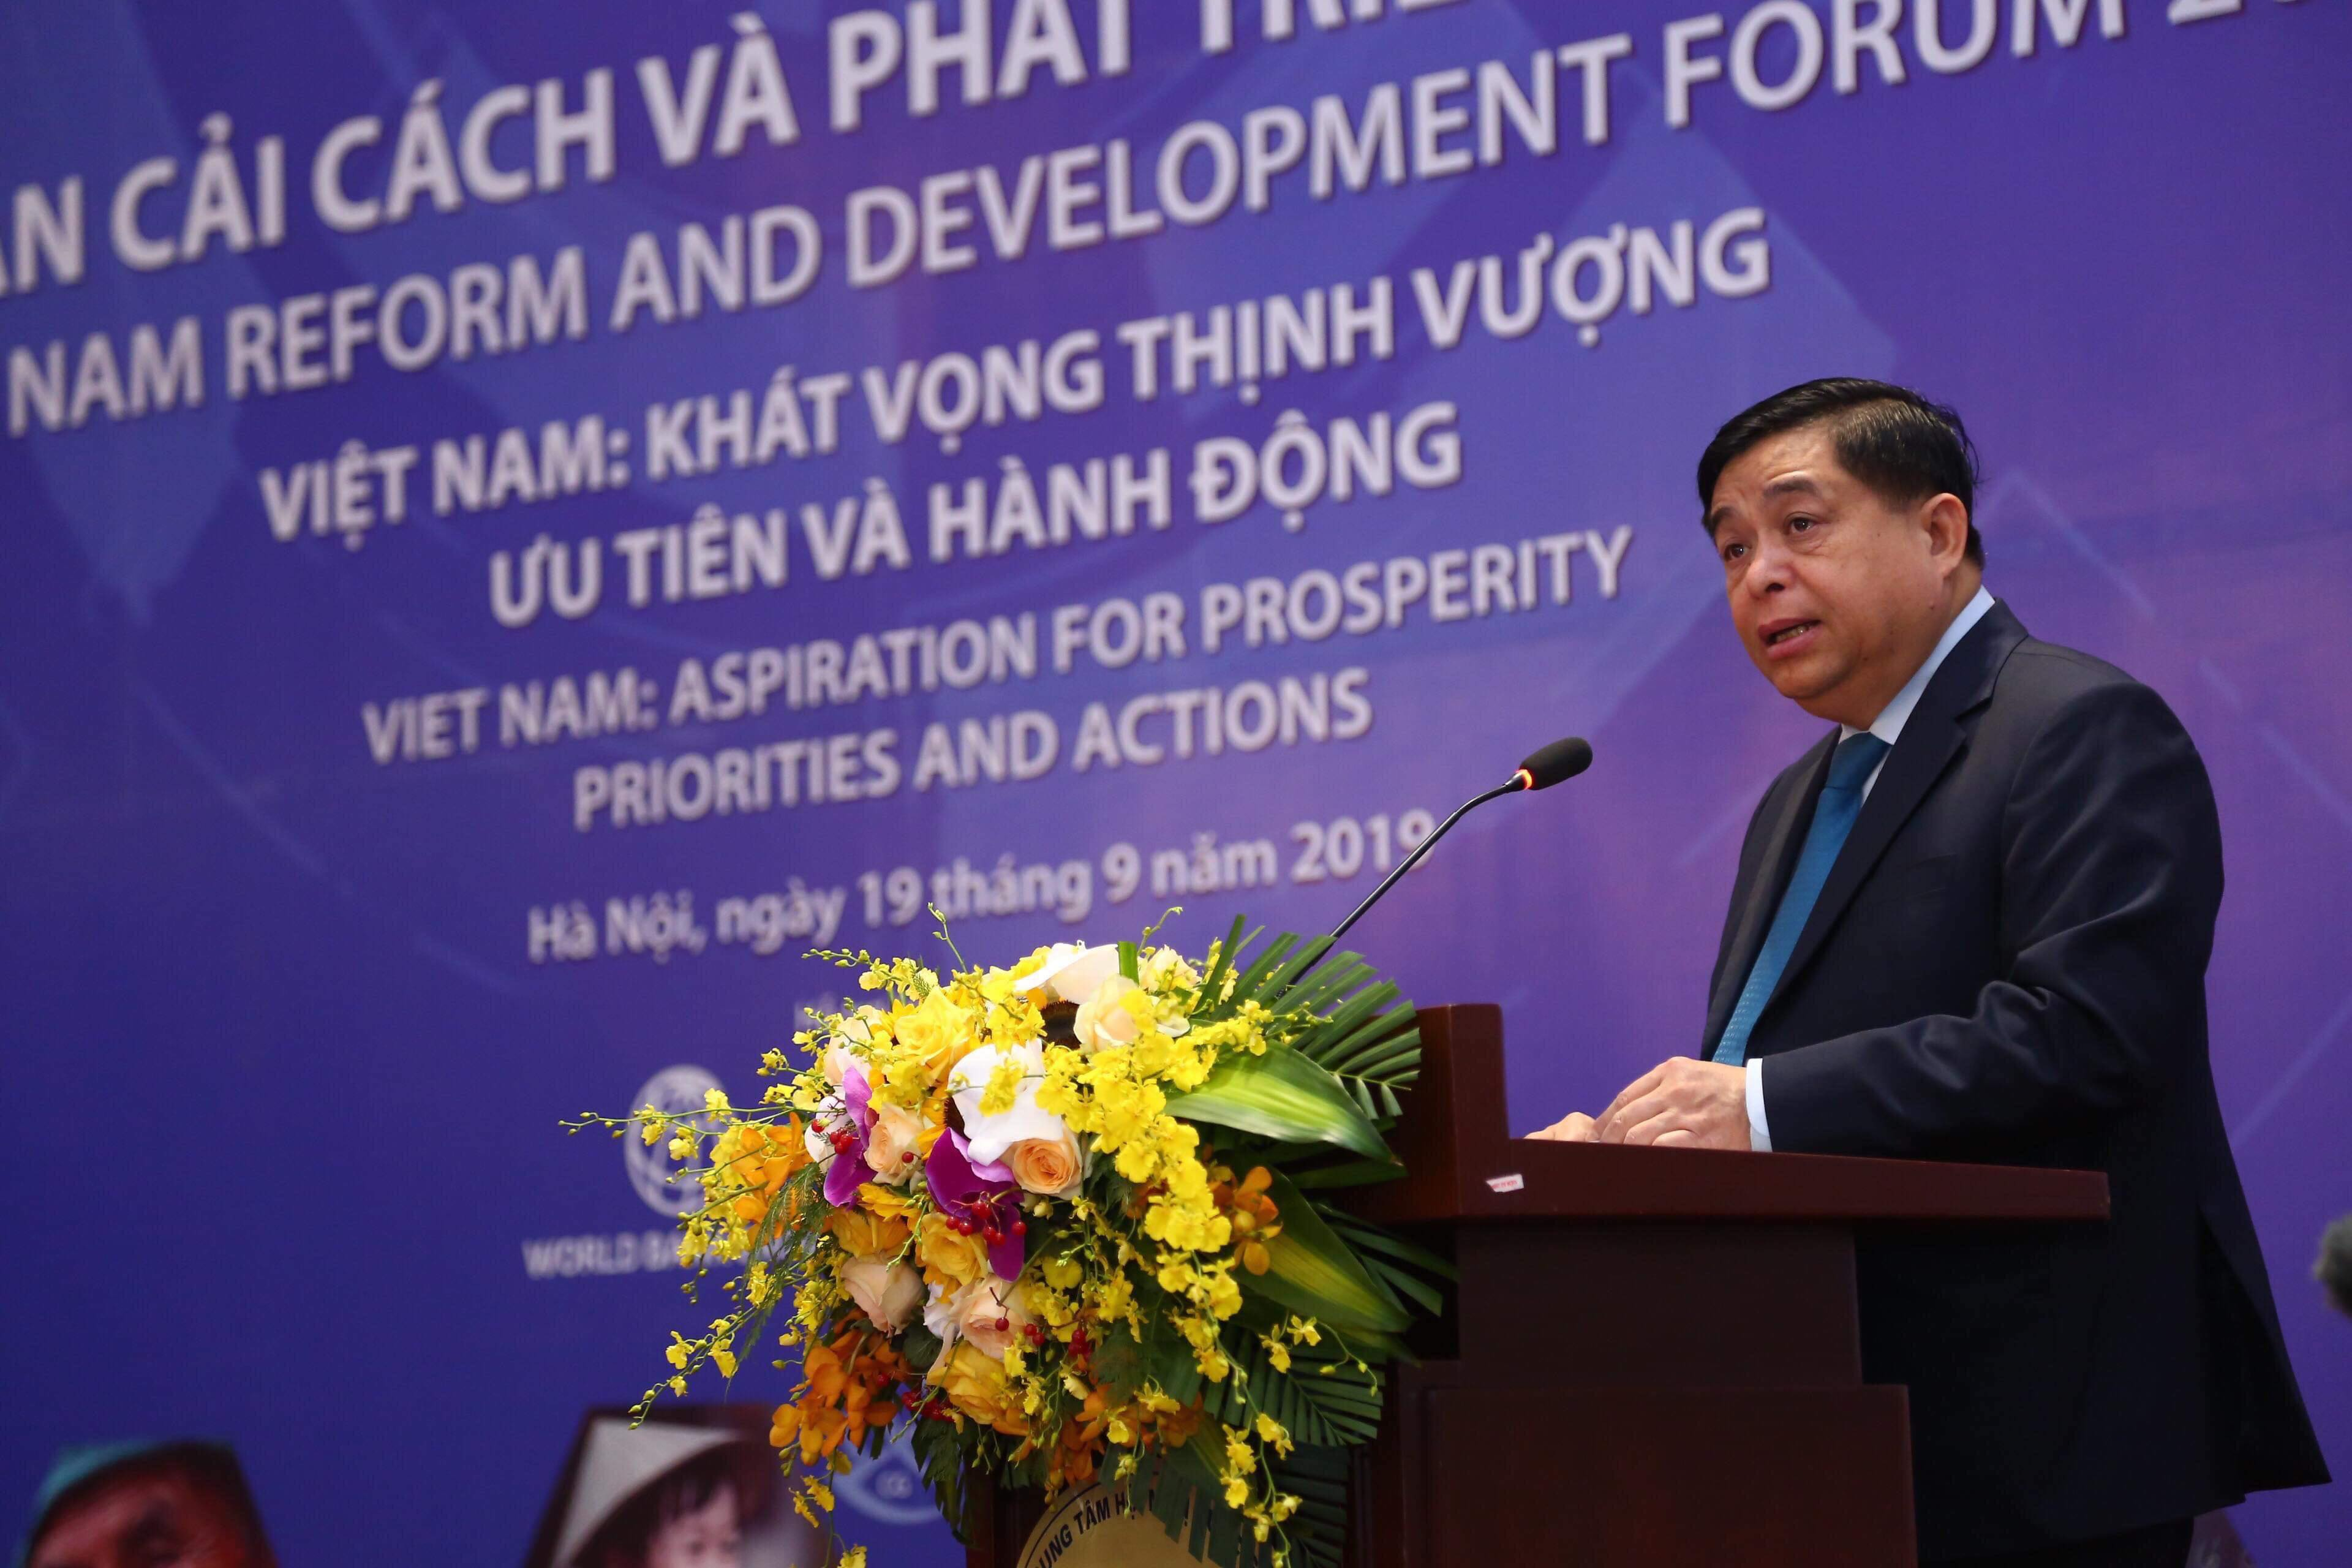 Innovations, thinking renewal needed for Vietnam's prosperity aspiration